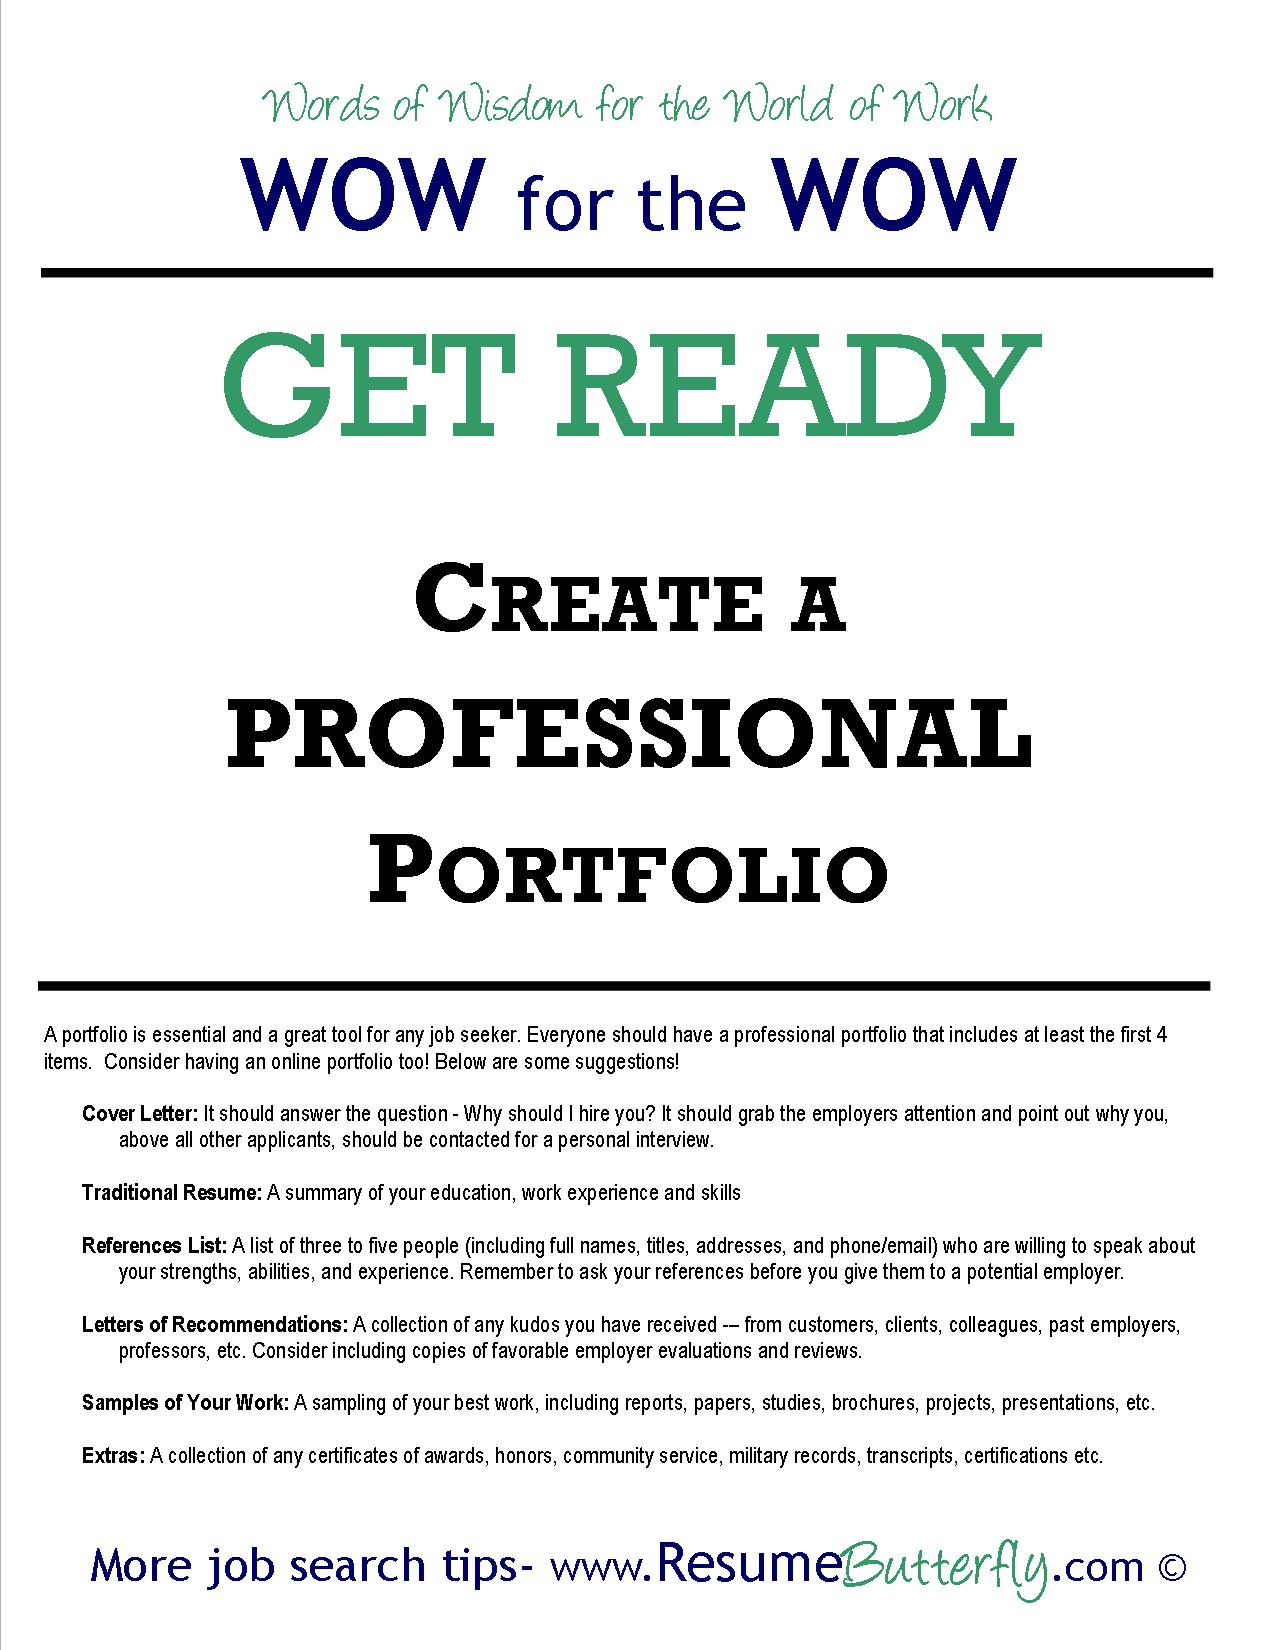 job search portfolio job search skills resume butterfly get ready professional portfolio